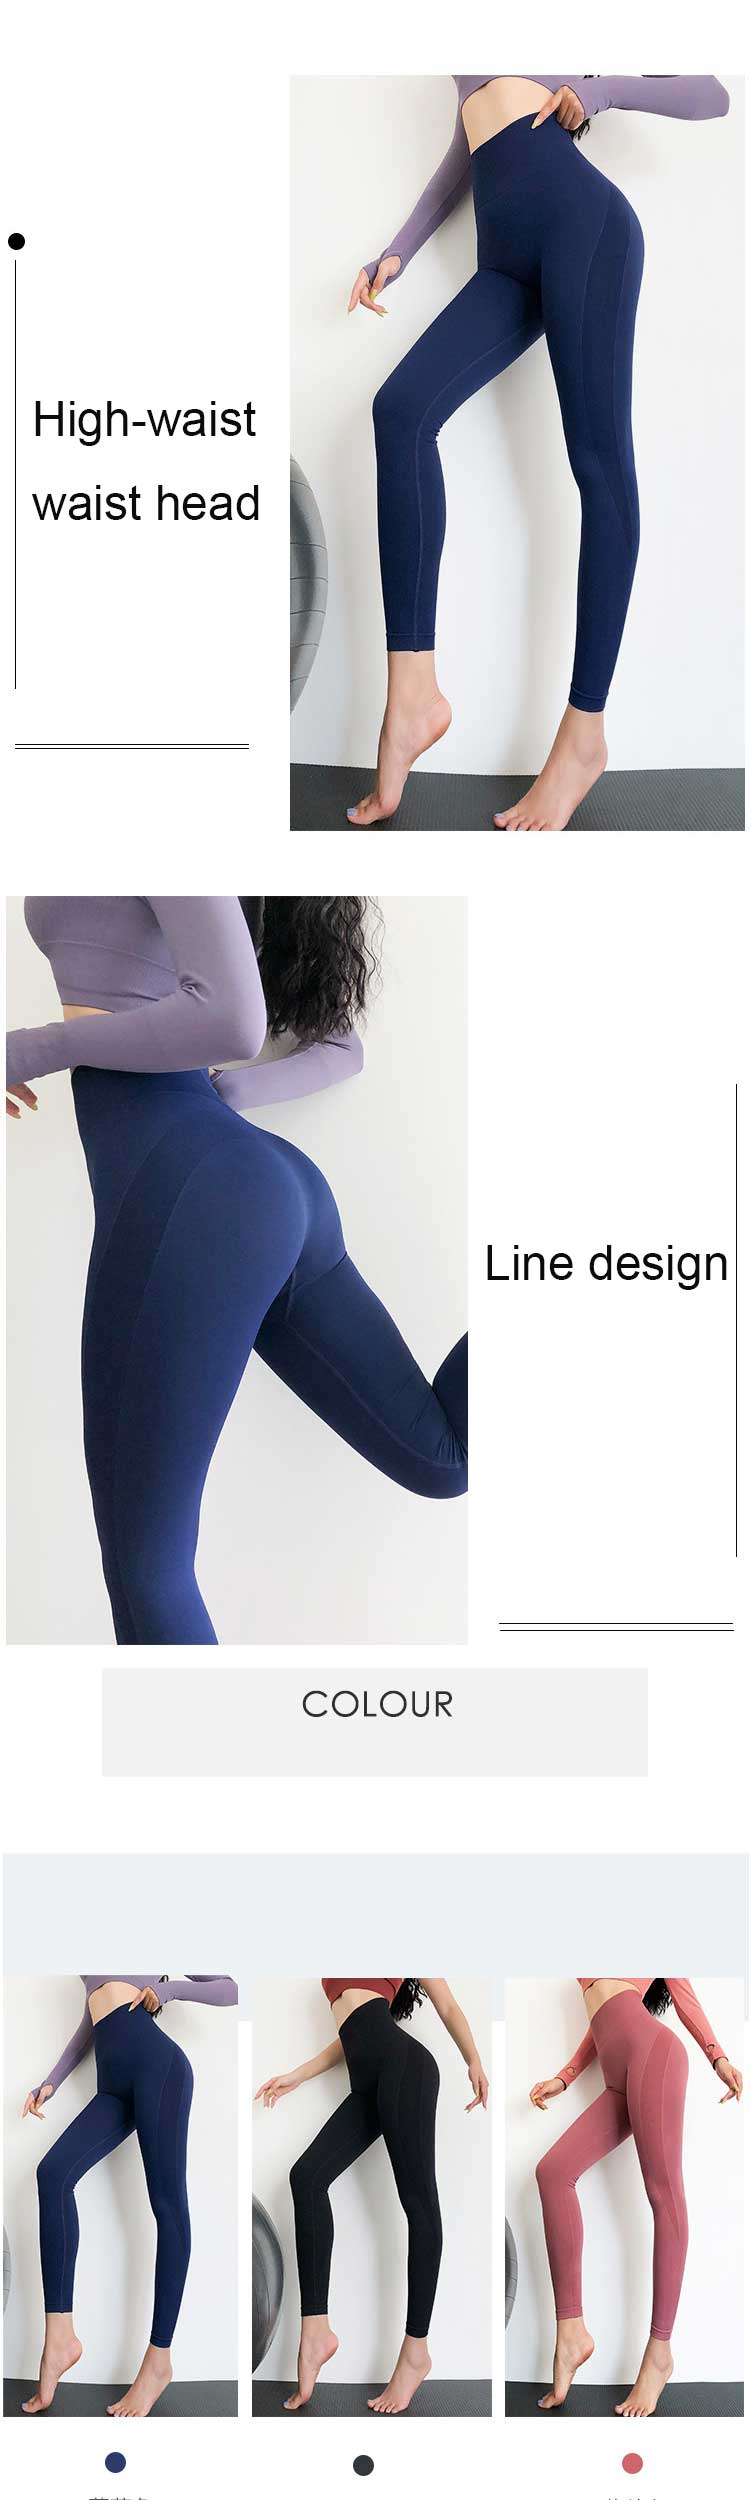 A-comfortable-and-close-fitting-high-waisted-running-leggings-are-essential-for-sports-enthusiasts